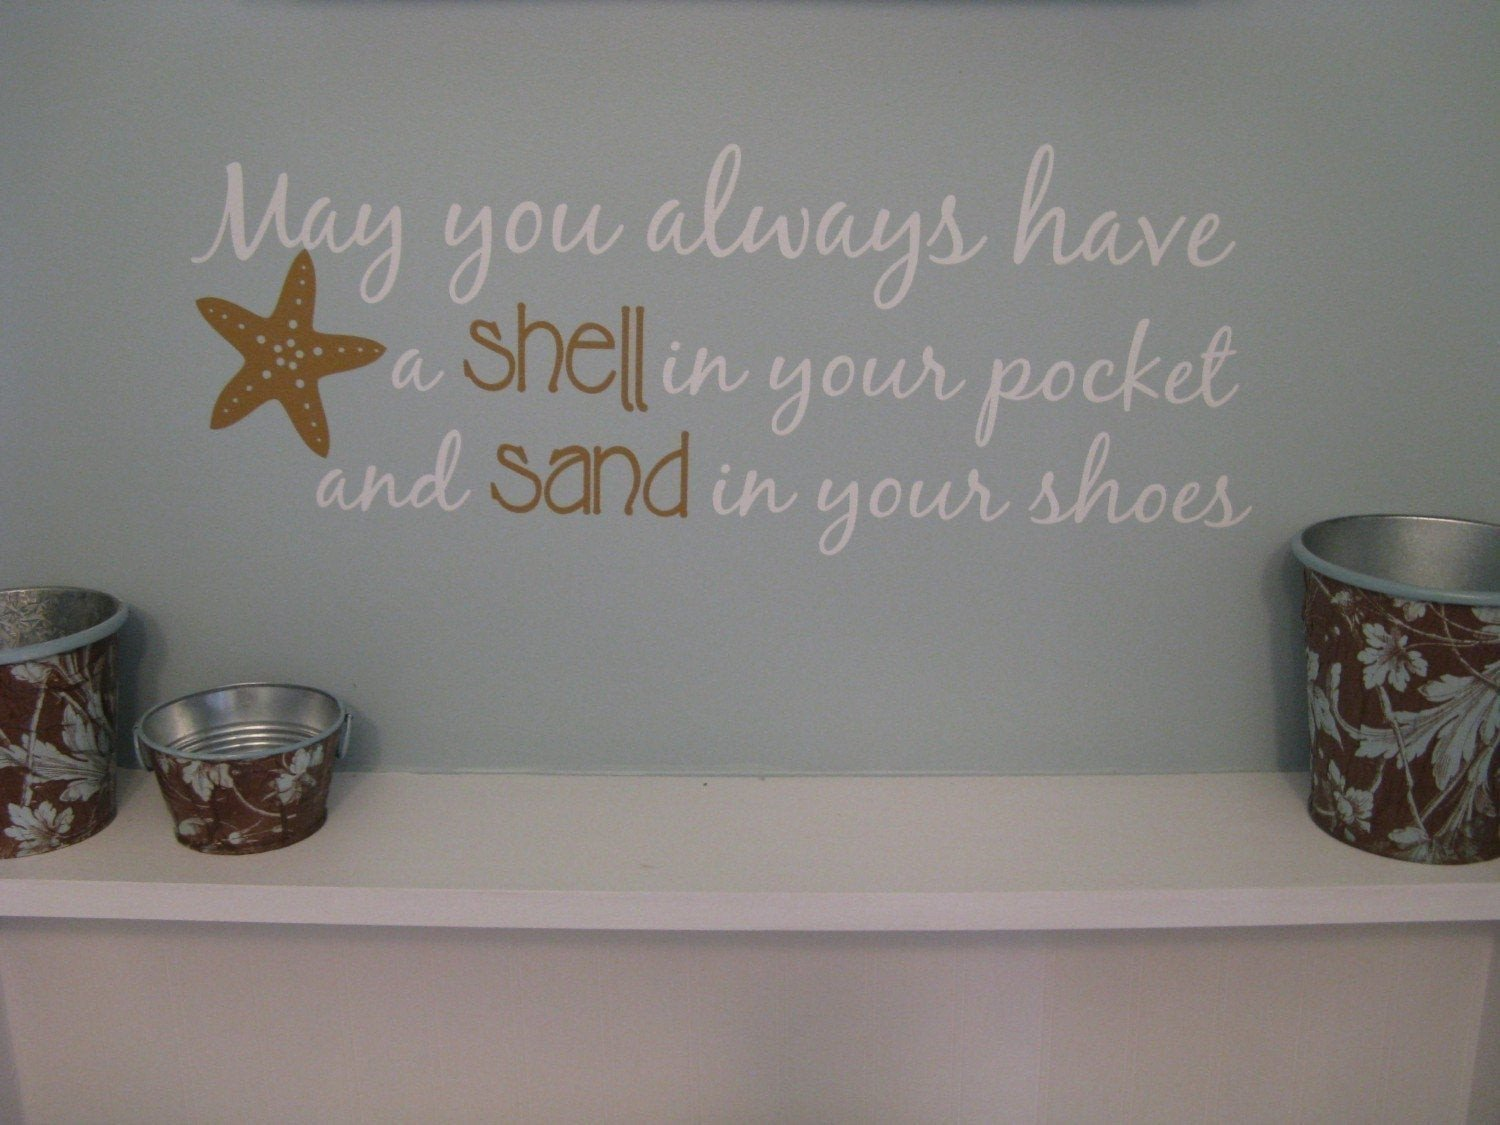 Beach Wall Decor for Bathroom Inspirational Beach Saying Wall Decal May You Always Have Shell In Your